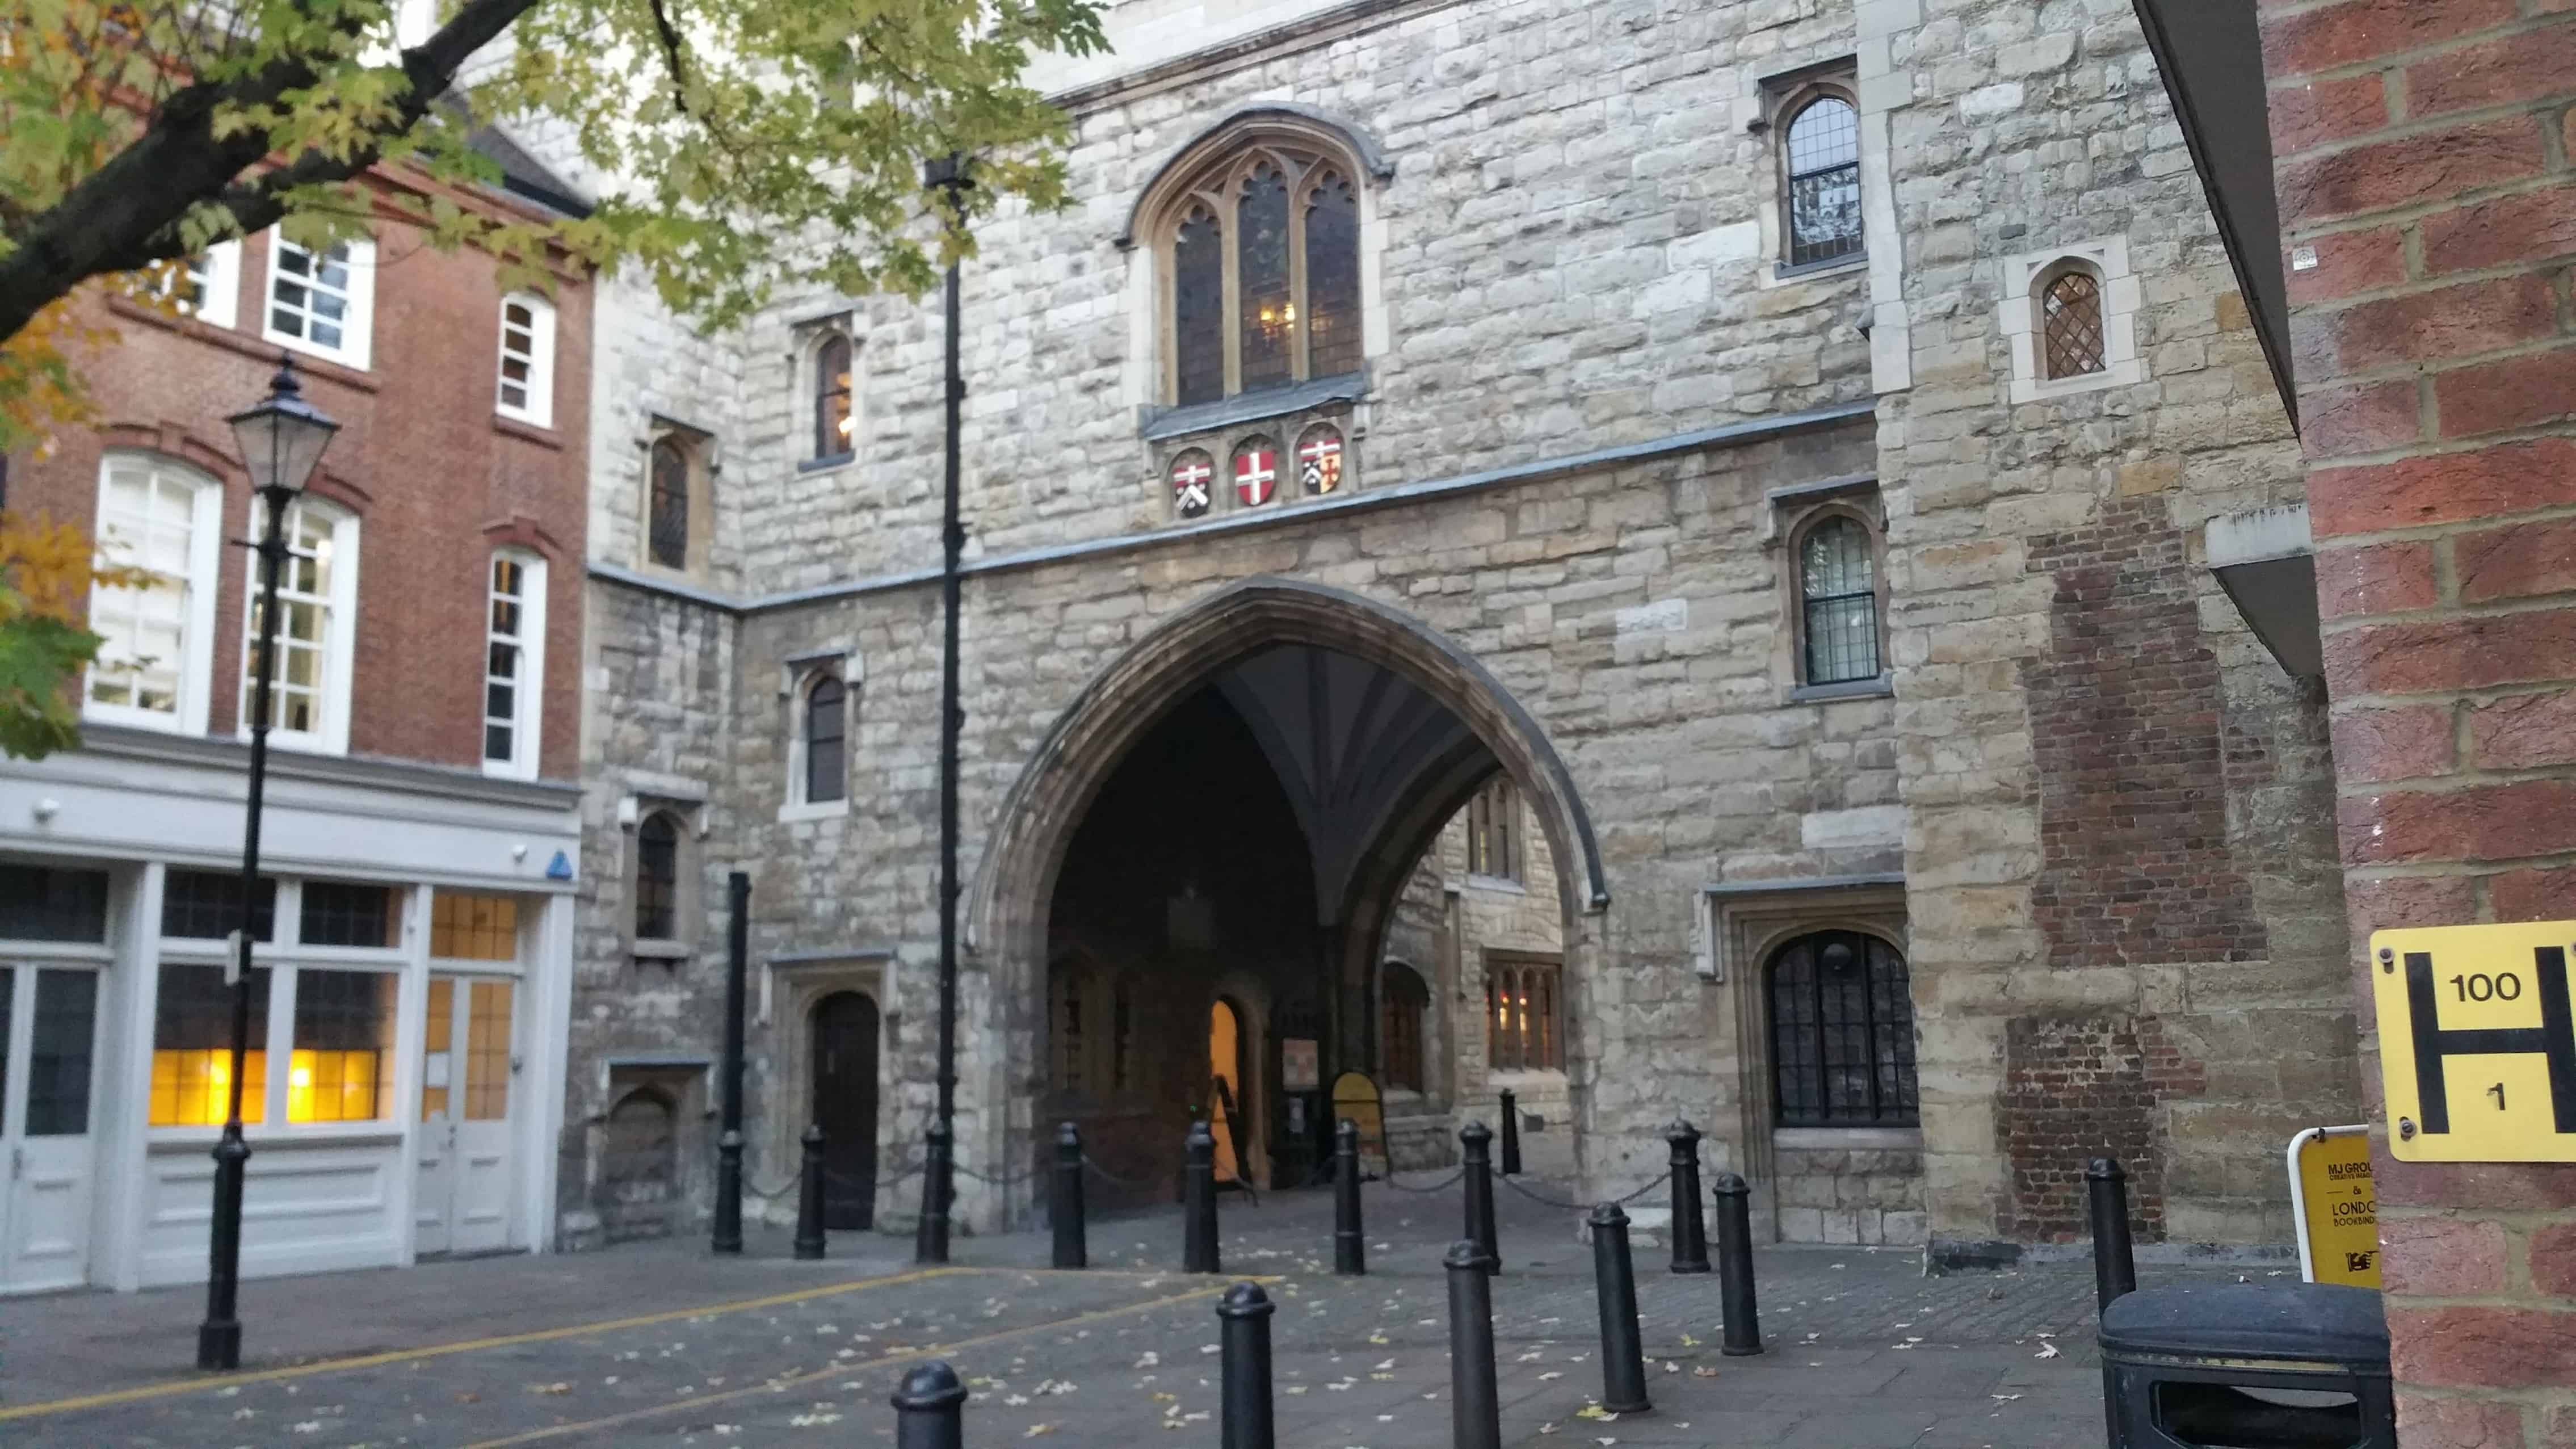 St John's Gate in Clerkenwell